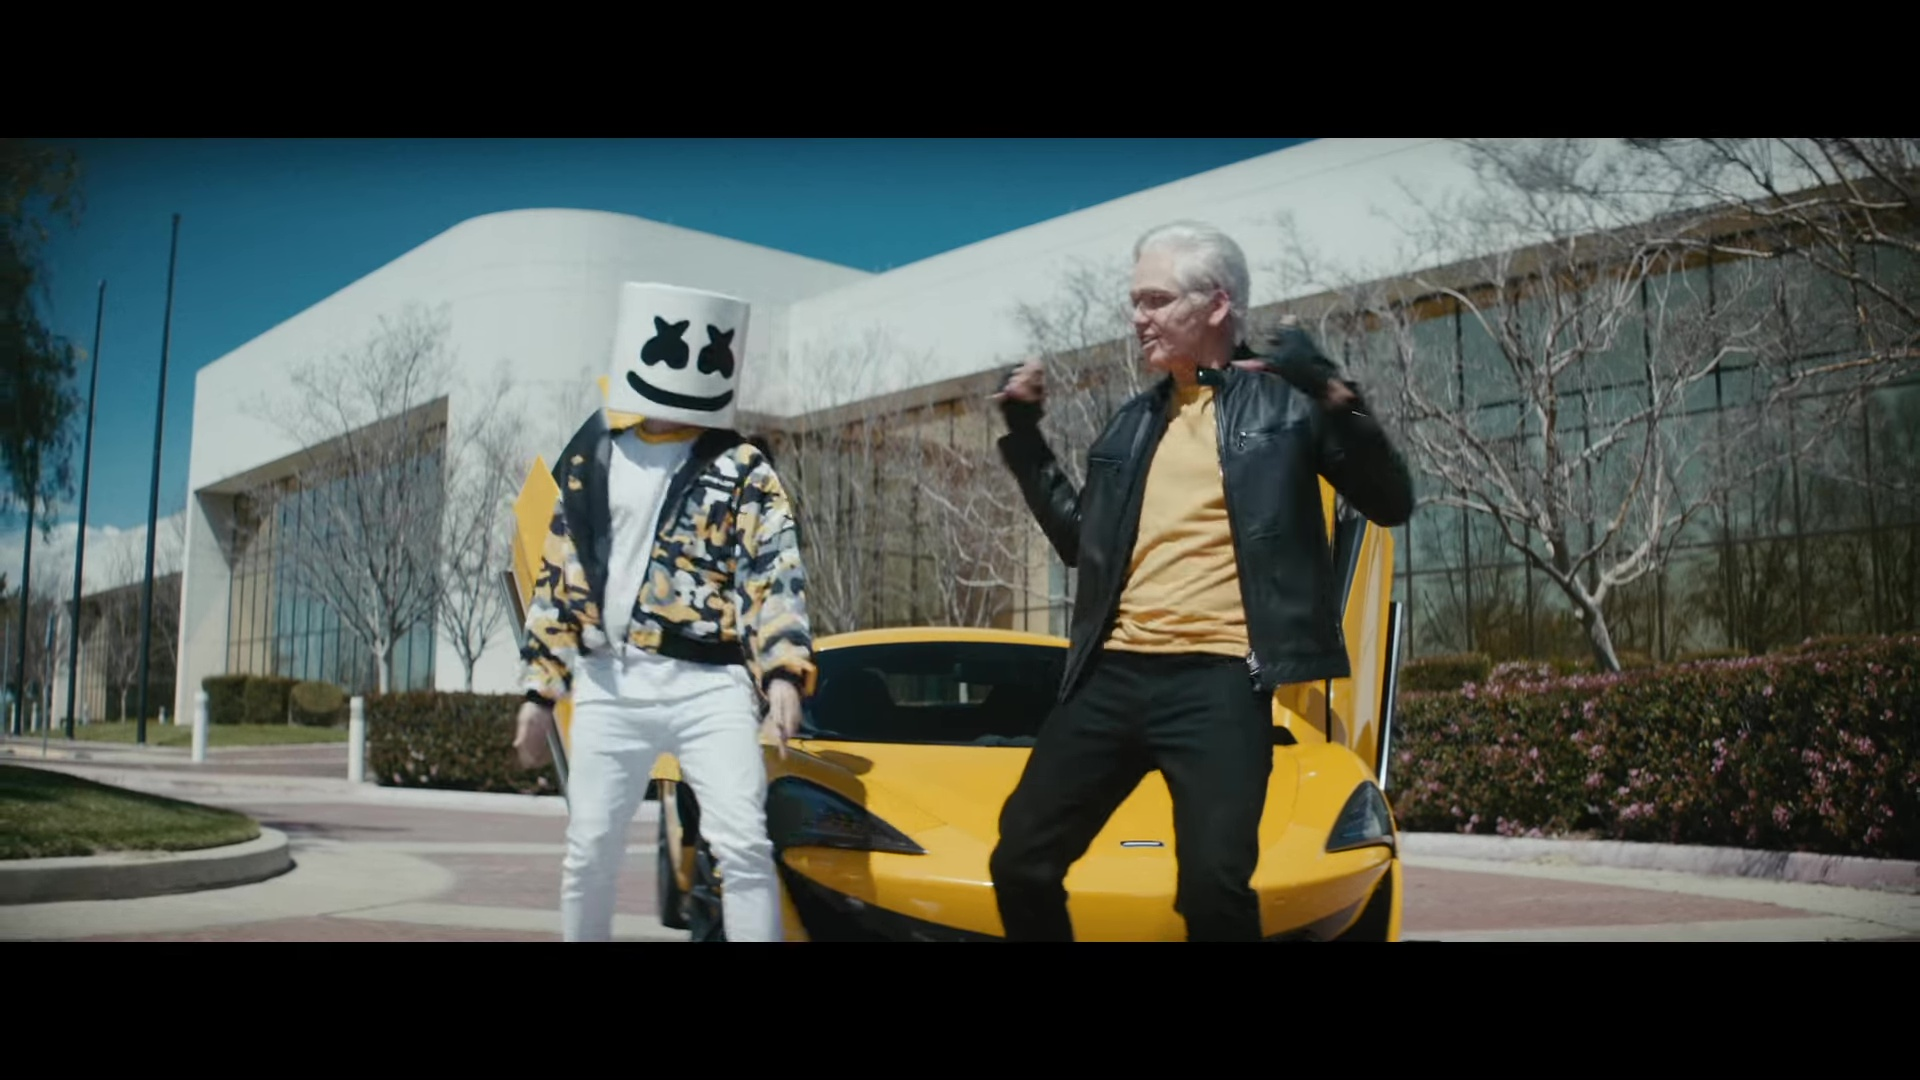 Sports Car Brands >> Mclaren Sports Car (Yellow) in Everyday by Logic and Marshmello (2018) Official Music Video